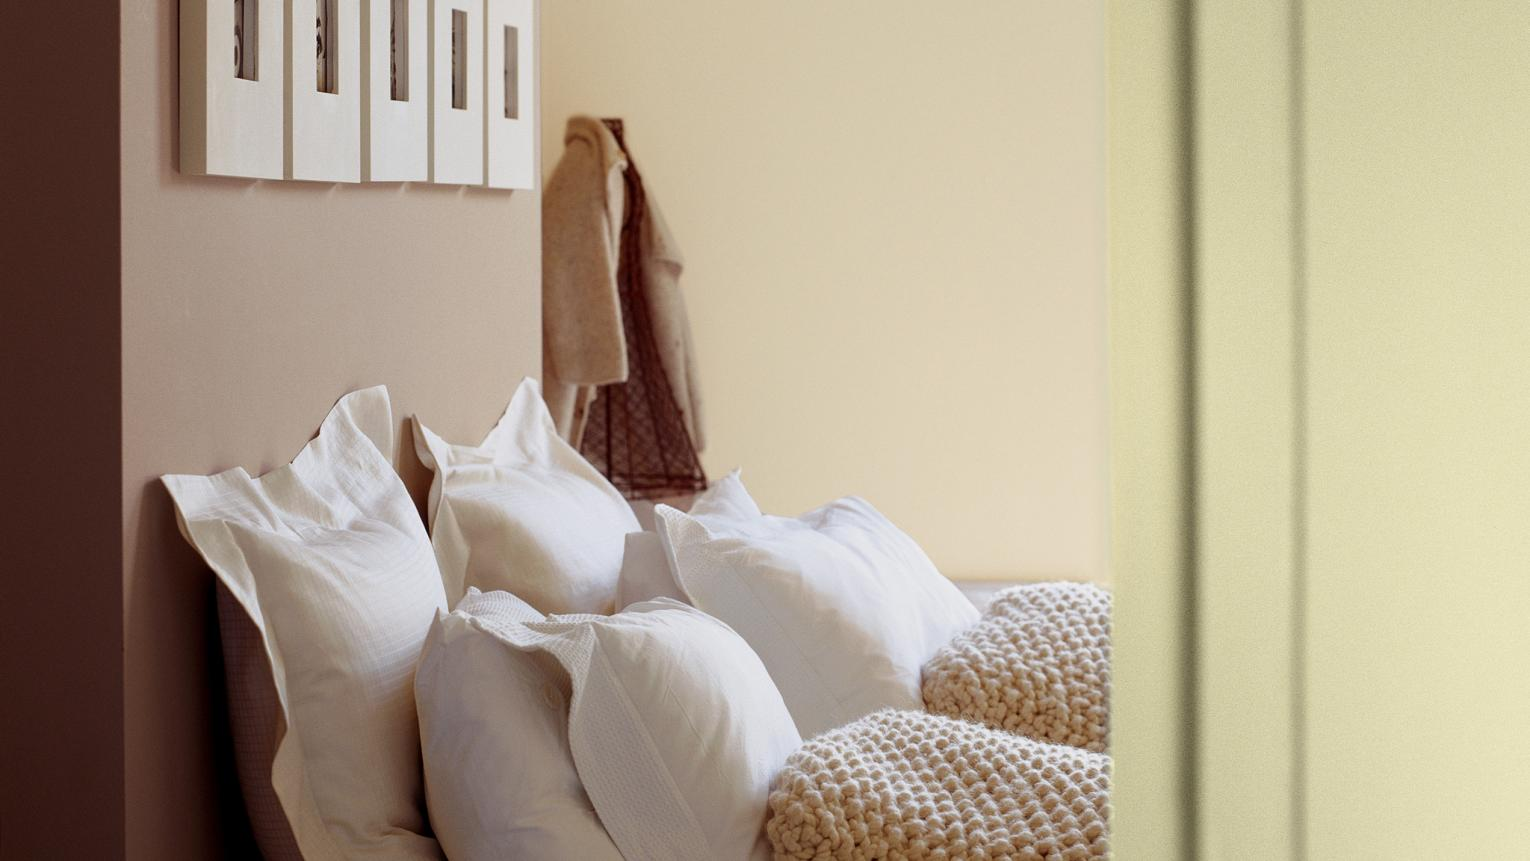 Mix gentle shades of cream and latte to create a restful vibe.